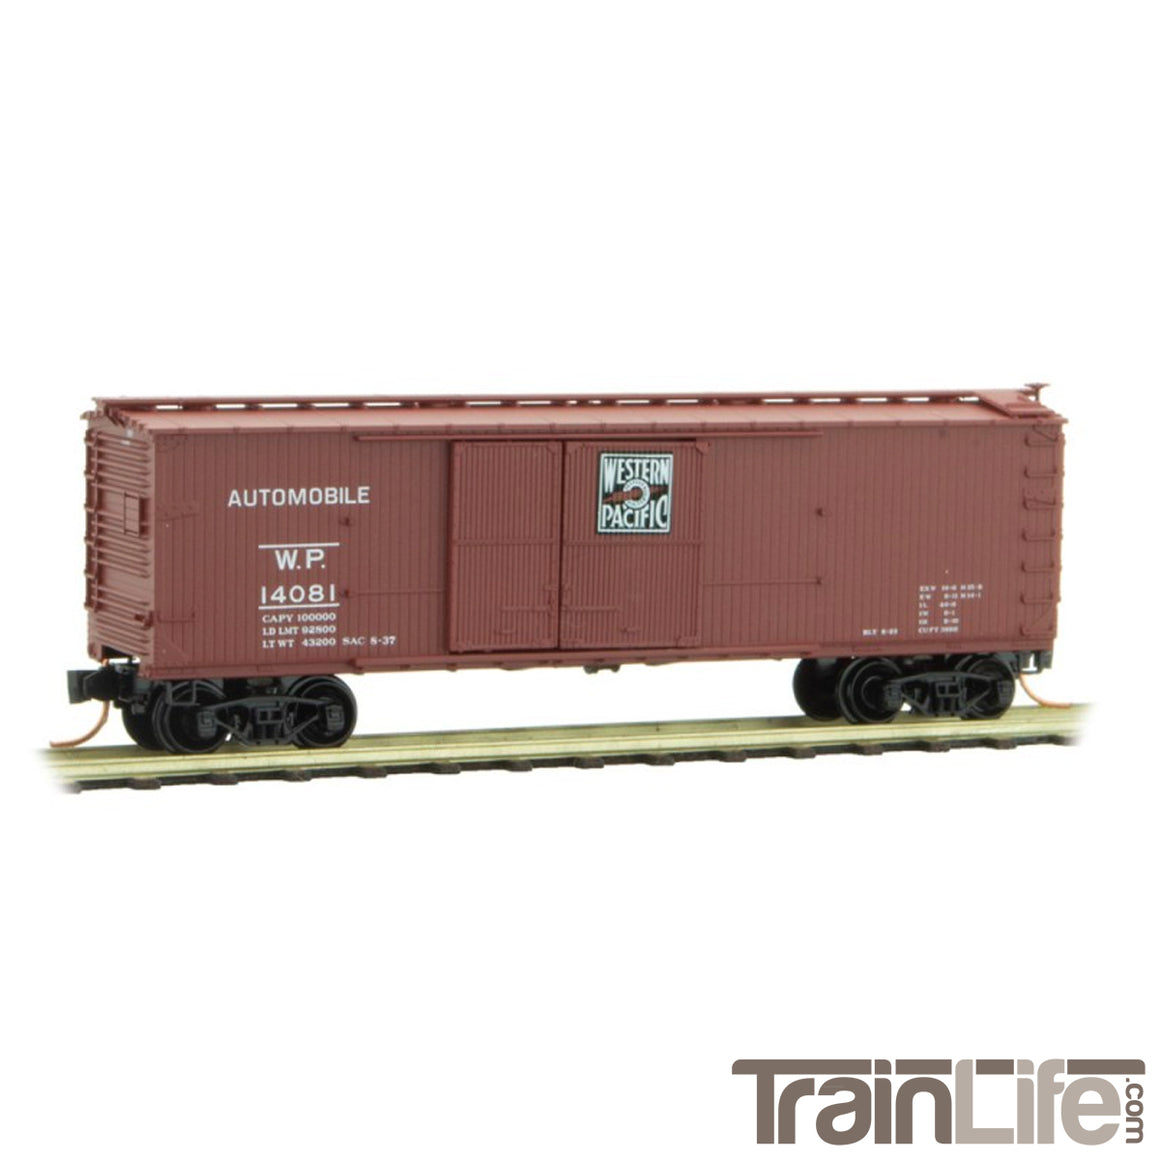 N Scale: 40' Double-Sheathed Automobile Boxcar - WP